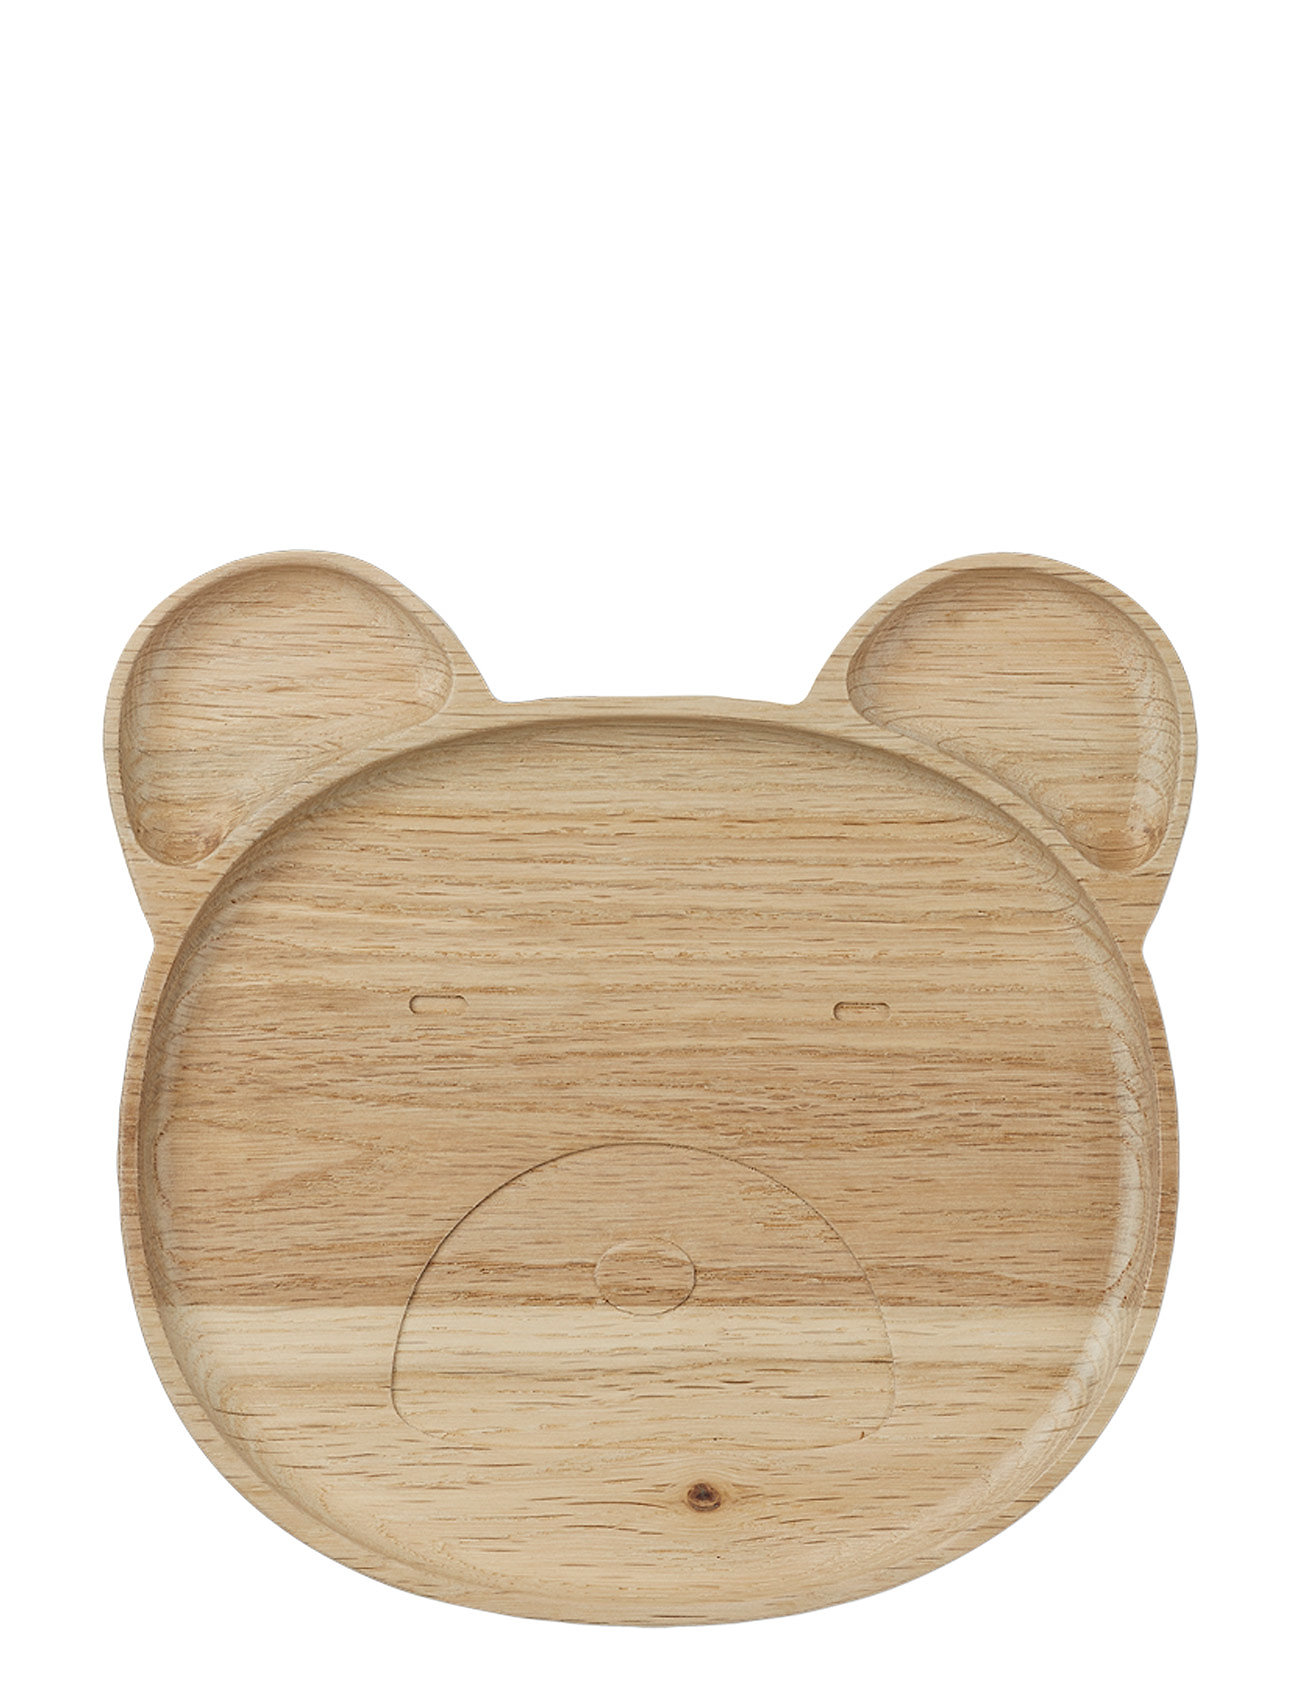 Liewood Conrad wood plate - MR BEAR NATURAL